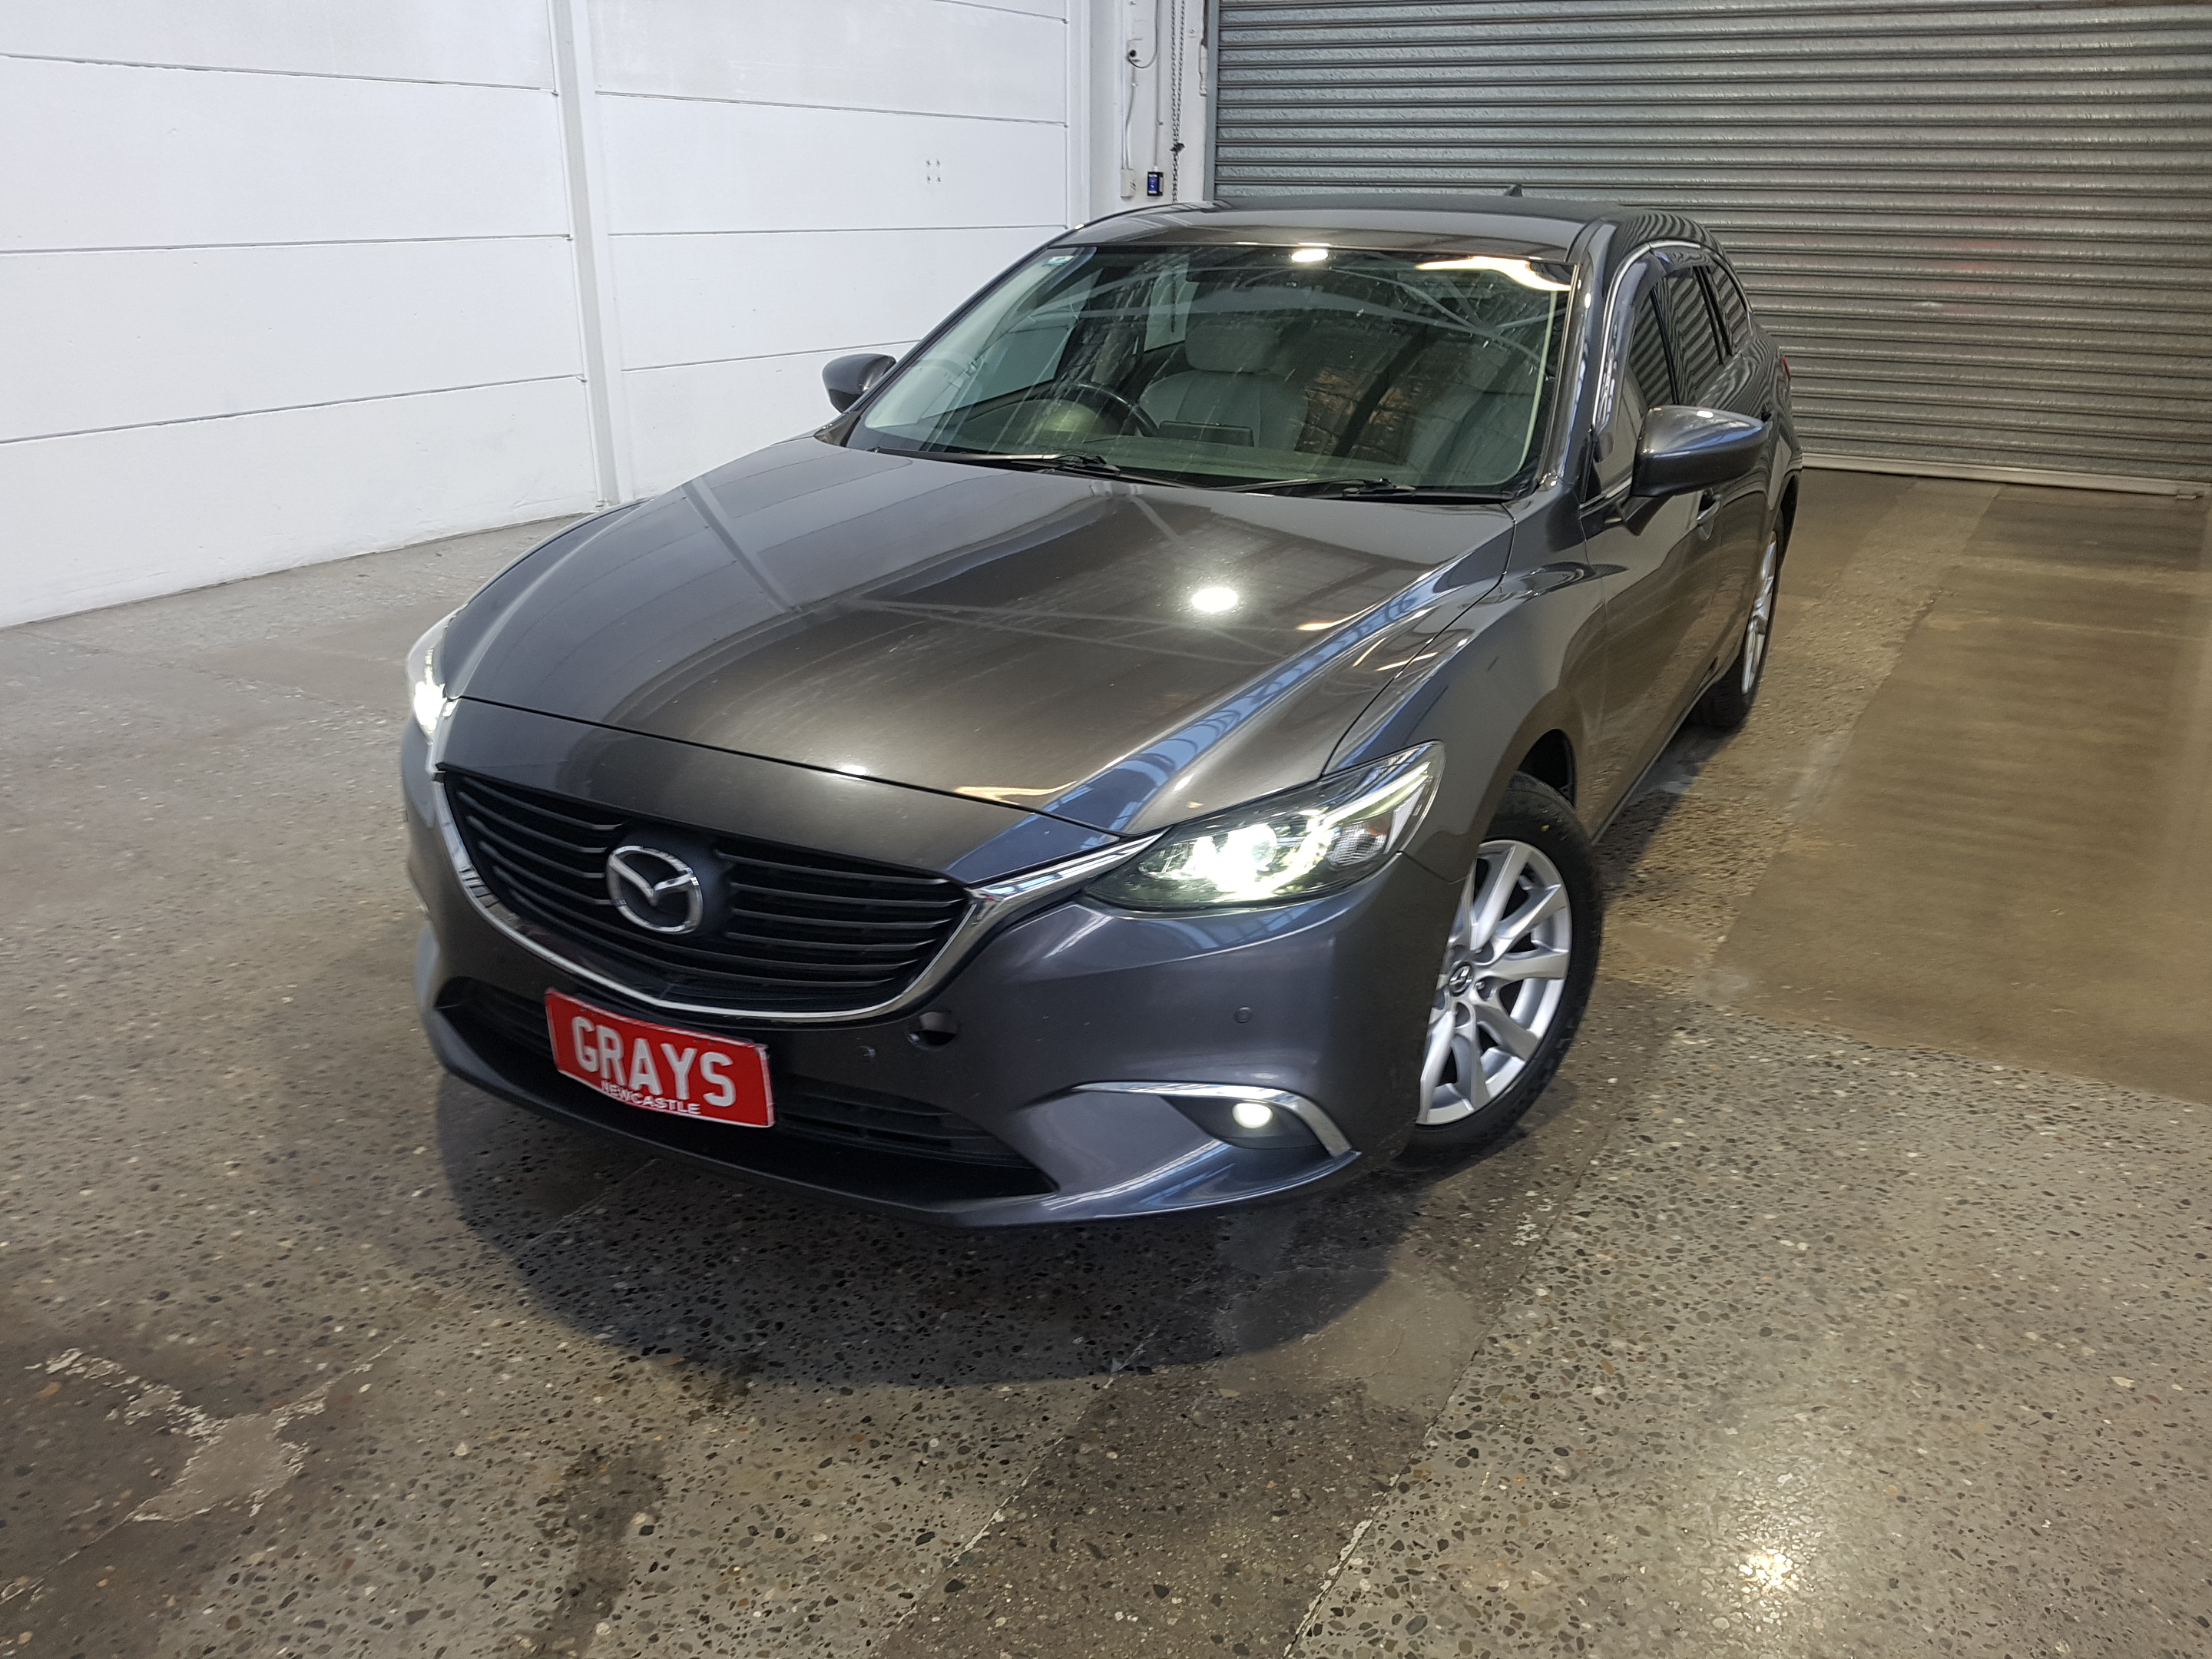 2015 Mazda 6 Touring GJ Turbo Diesel Automatic Wagon